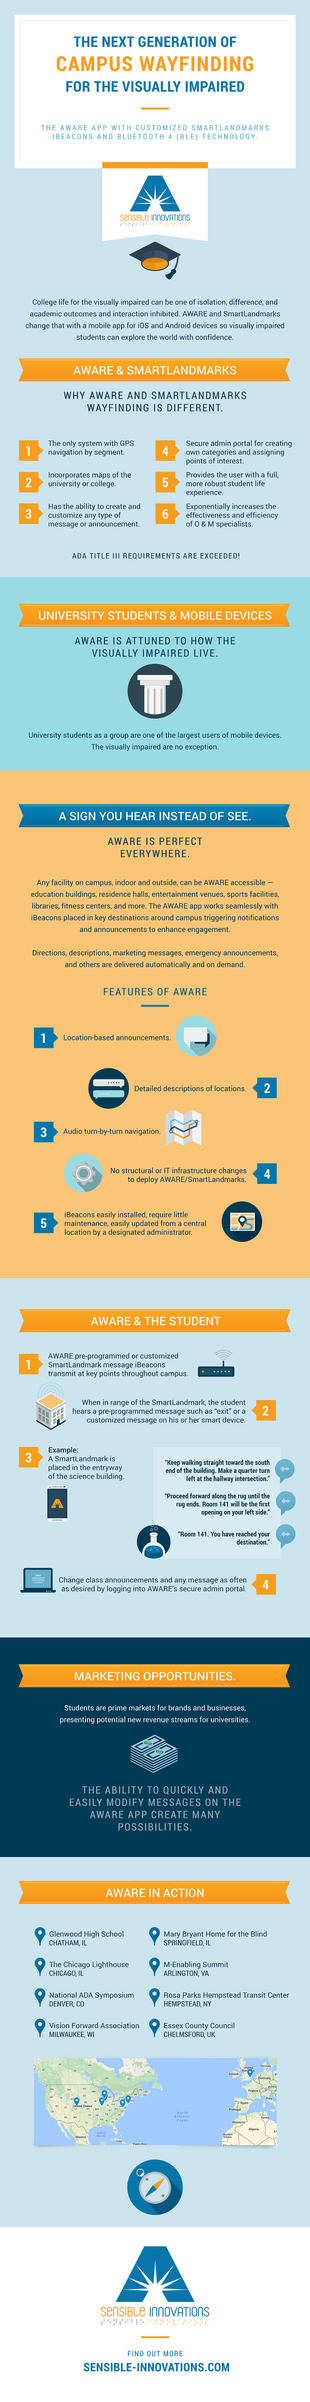 The Next Generation of Campus Wayfinding for the Visually Impaired Infographic